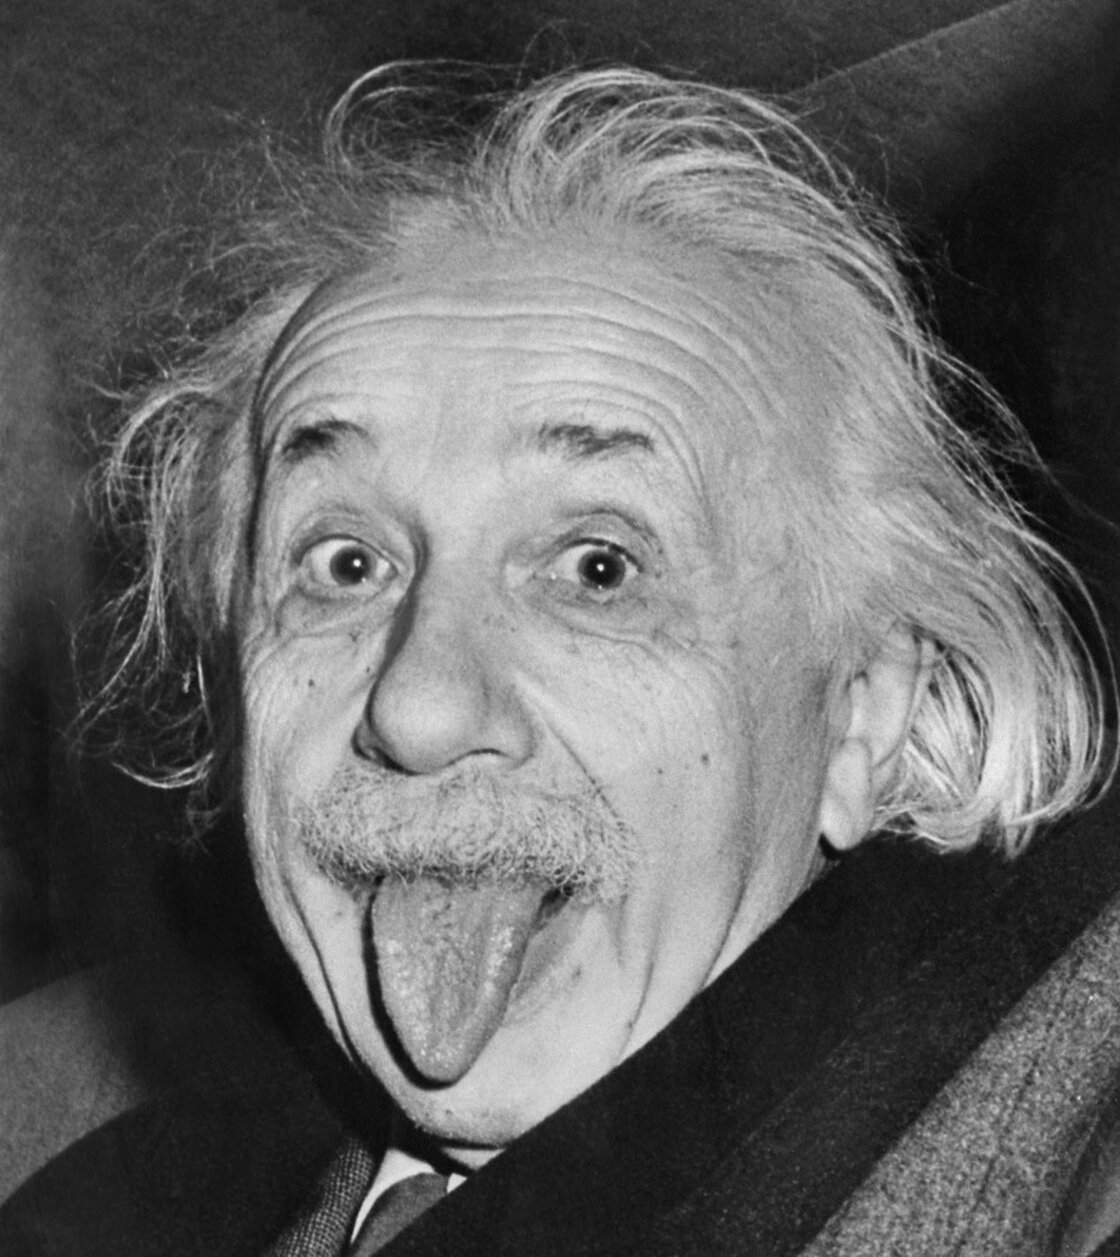 93434191-einstein-tongue_custom-36fb0ce3